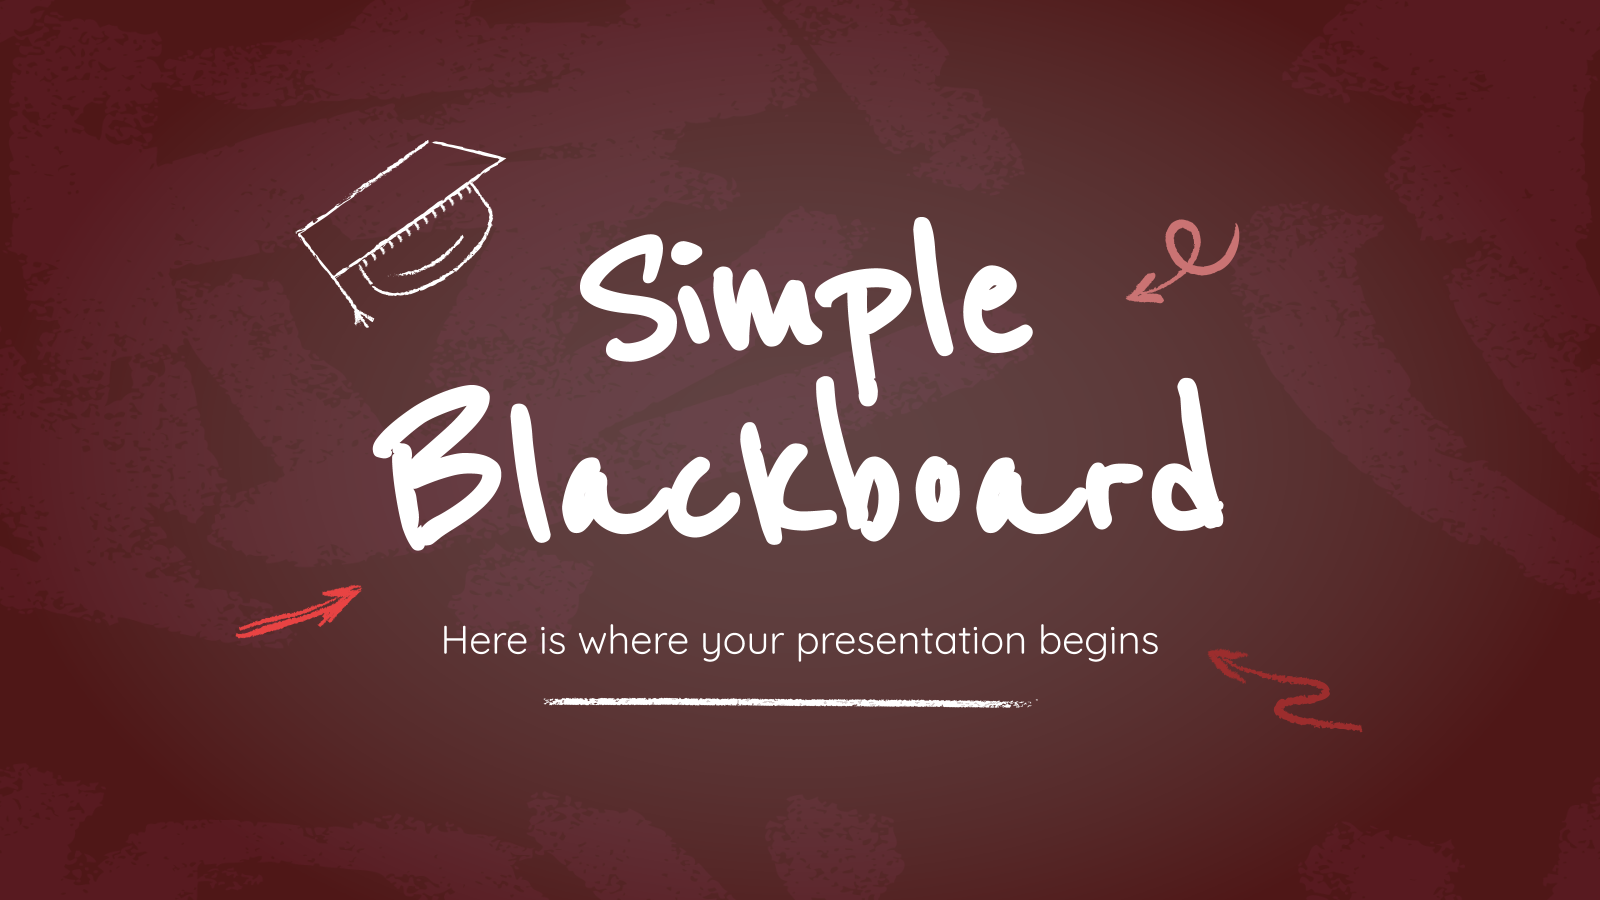 Simple Blackboard Background presentation template